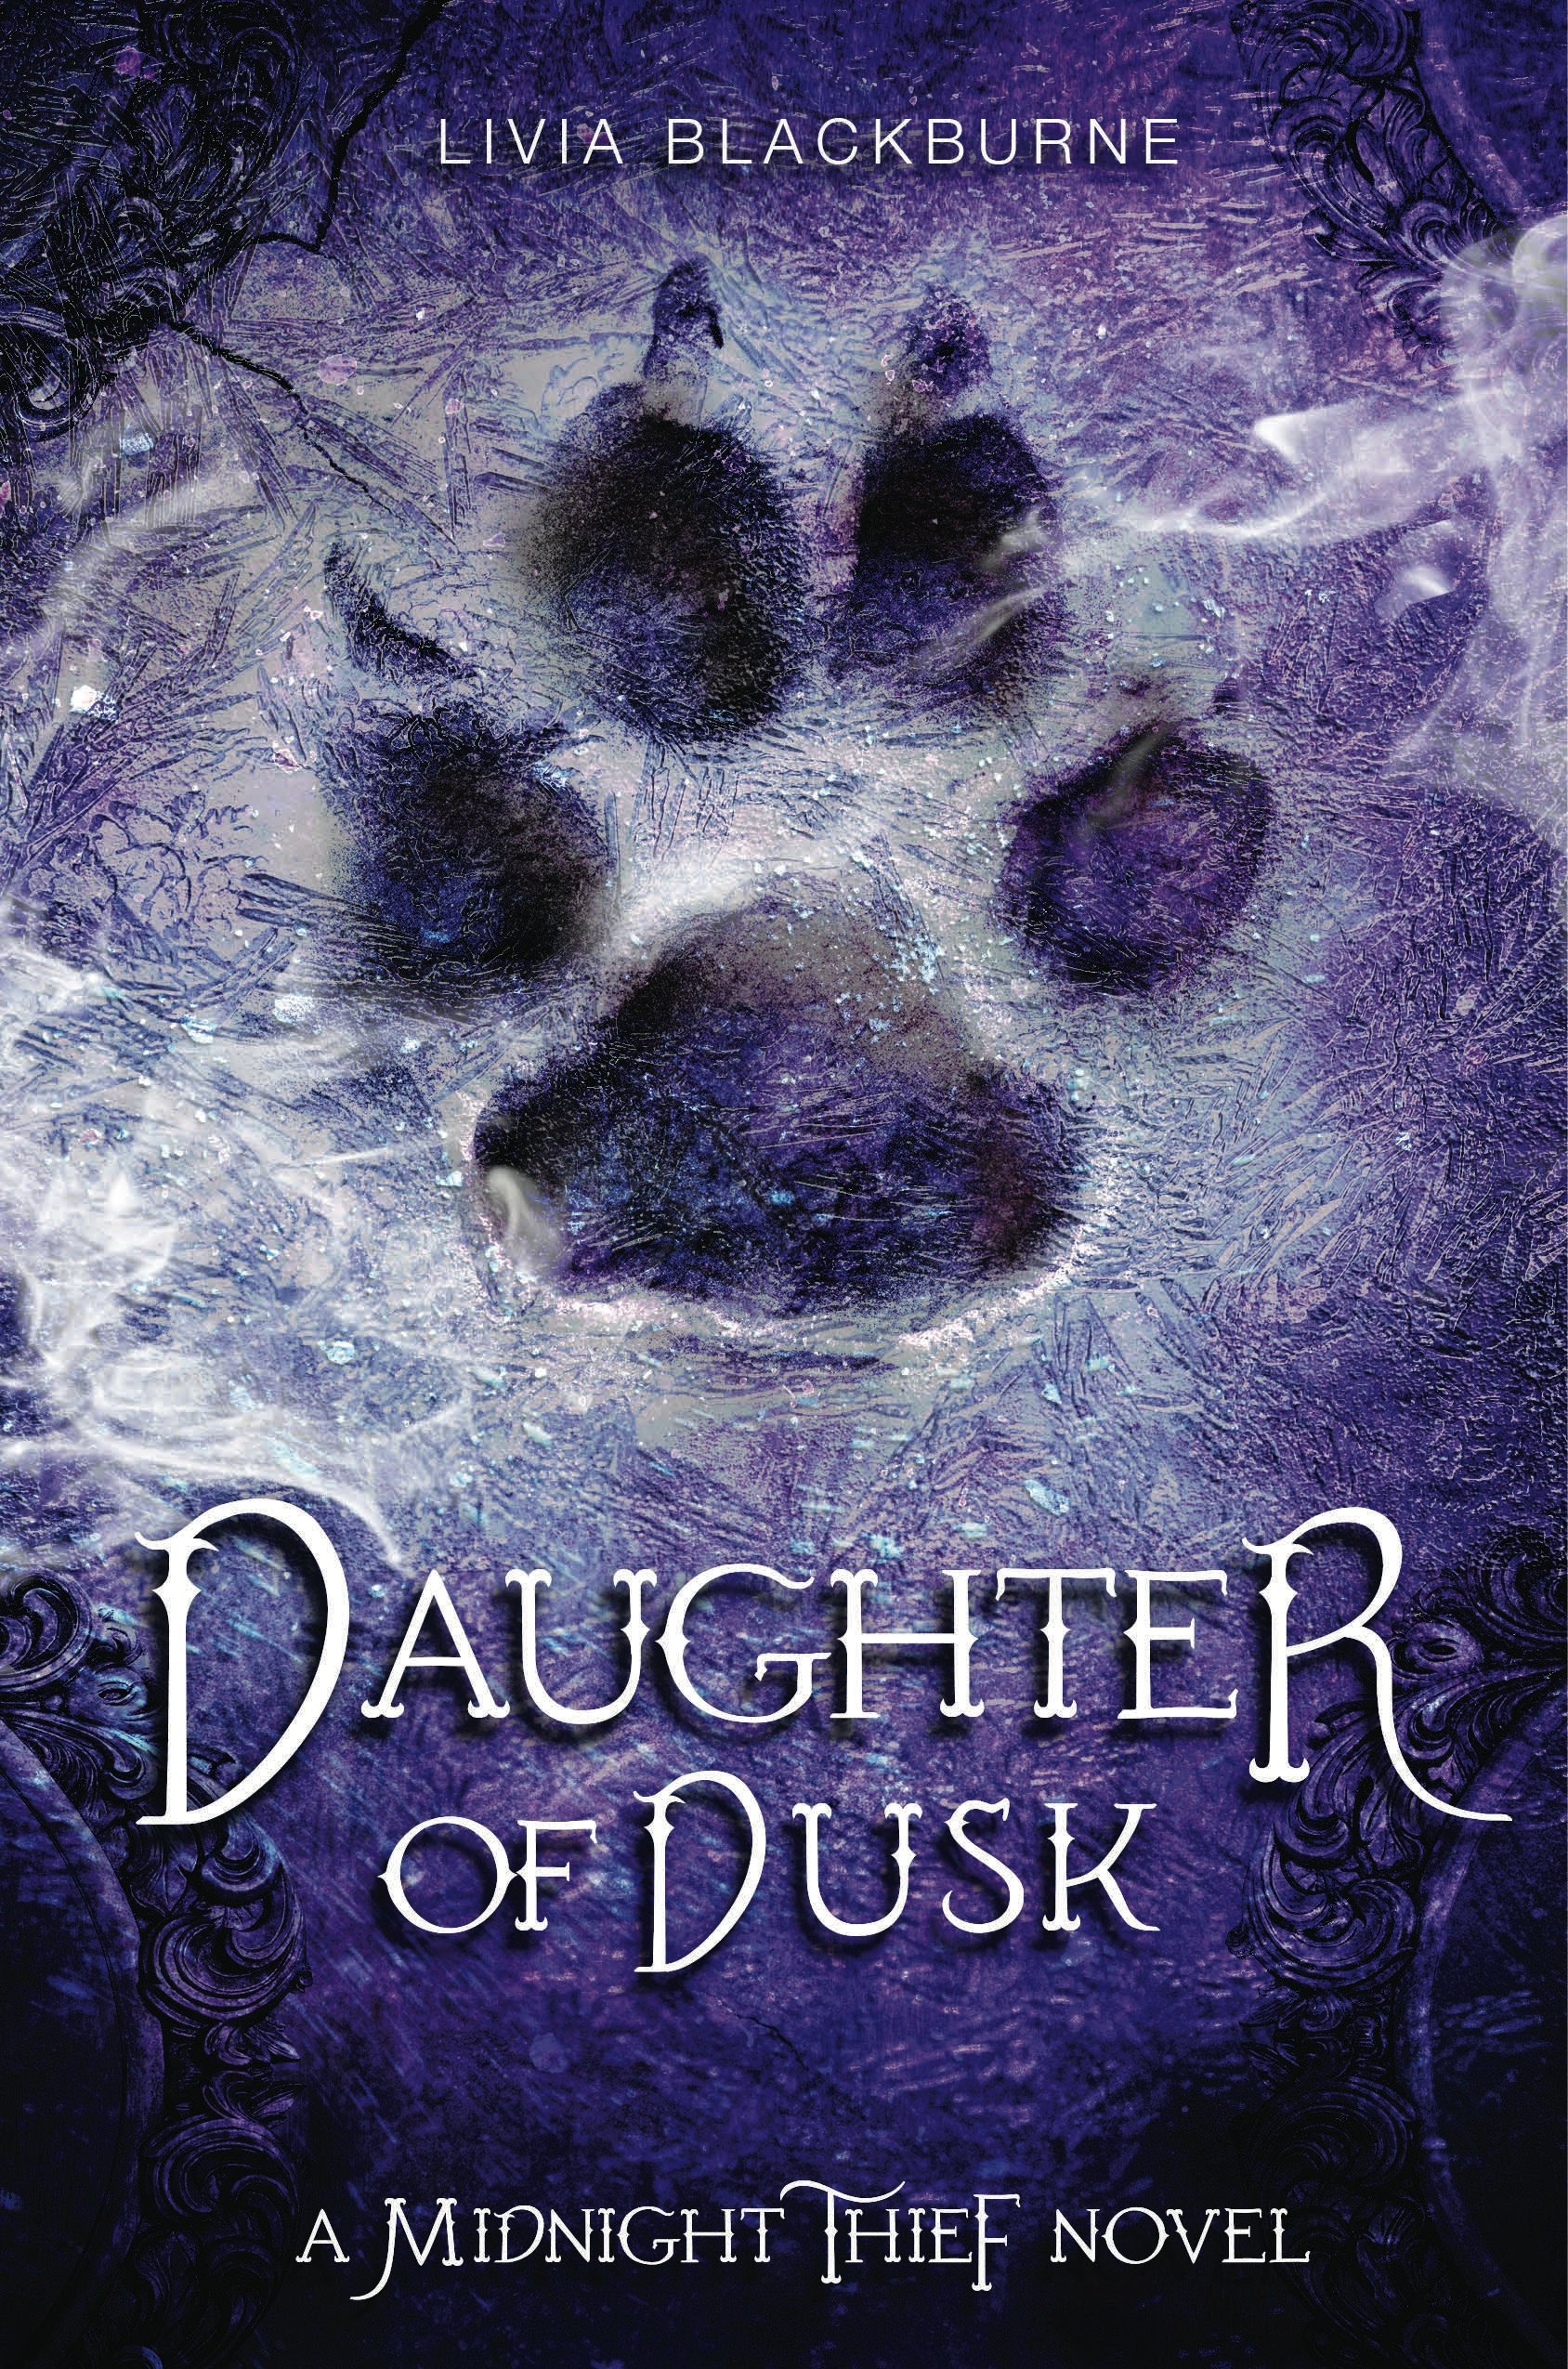 daughterofdusk_updated_1-20-15